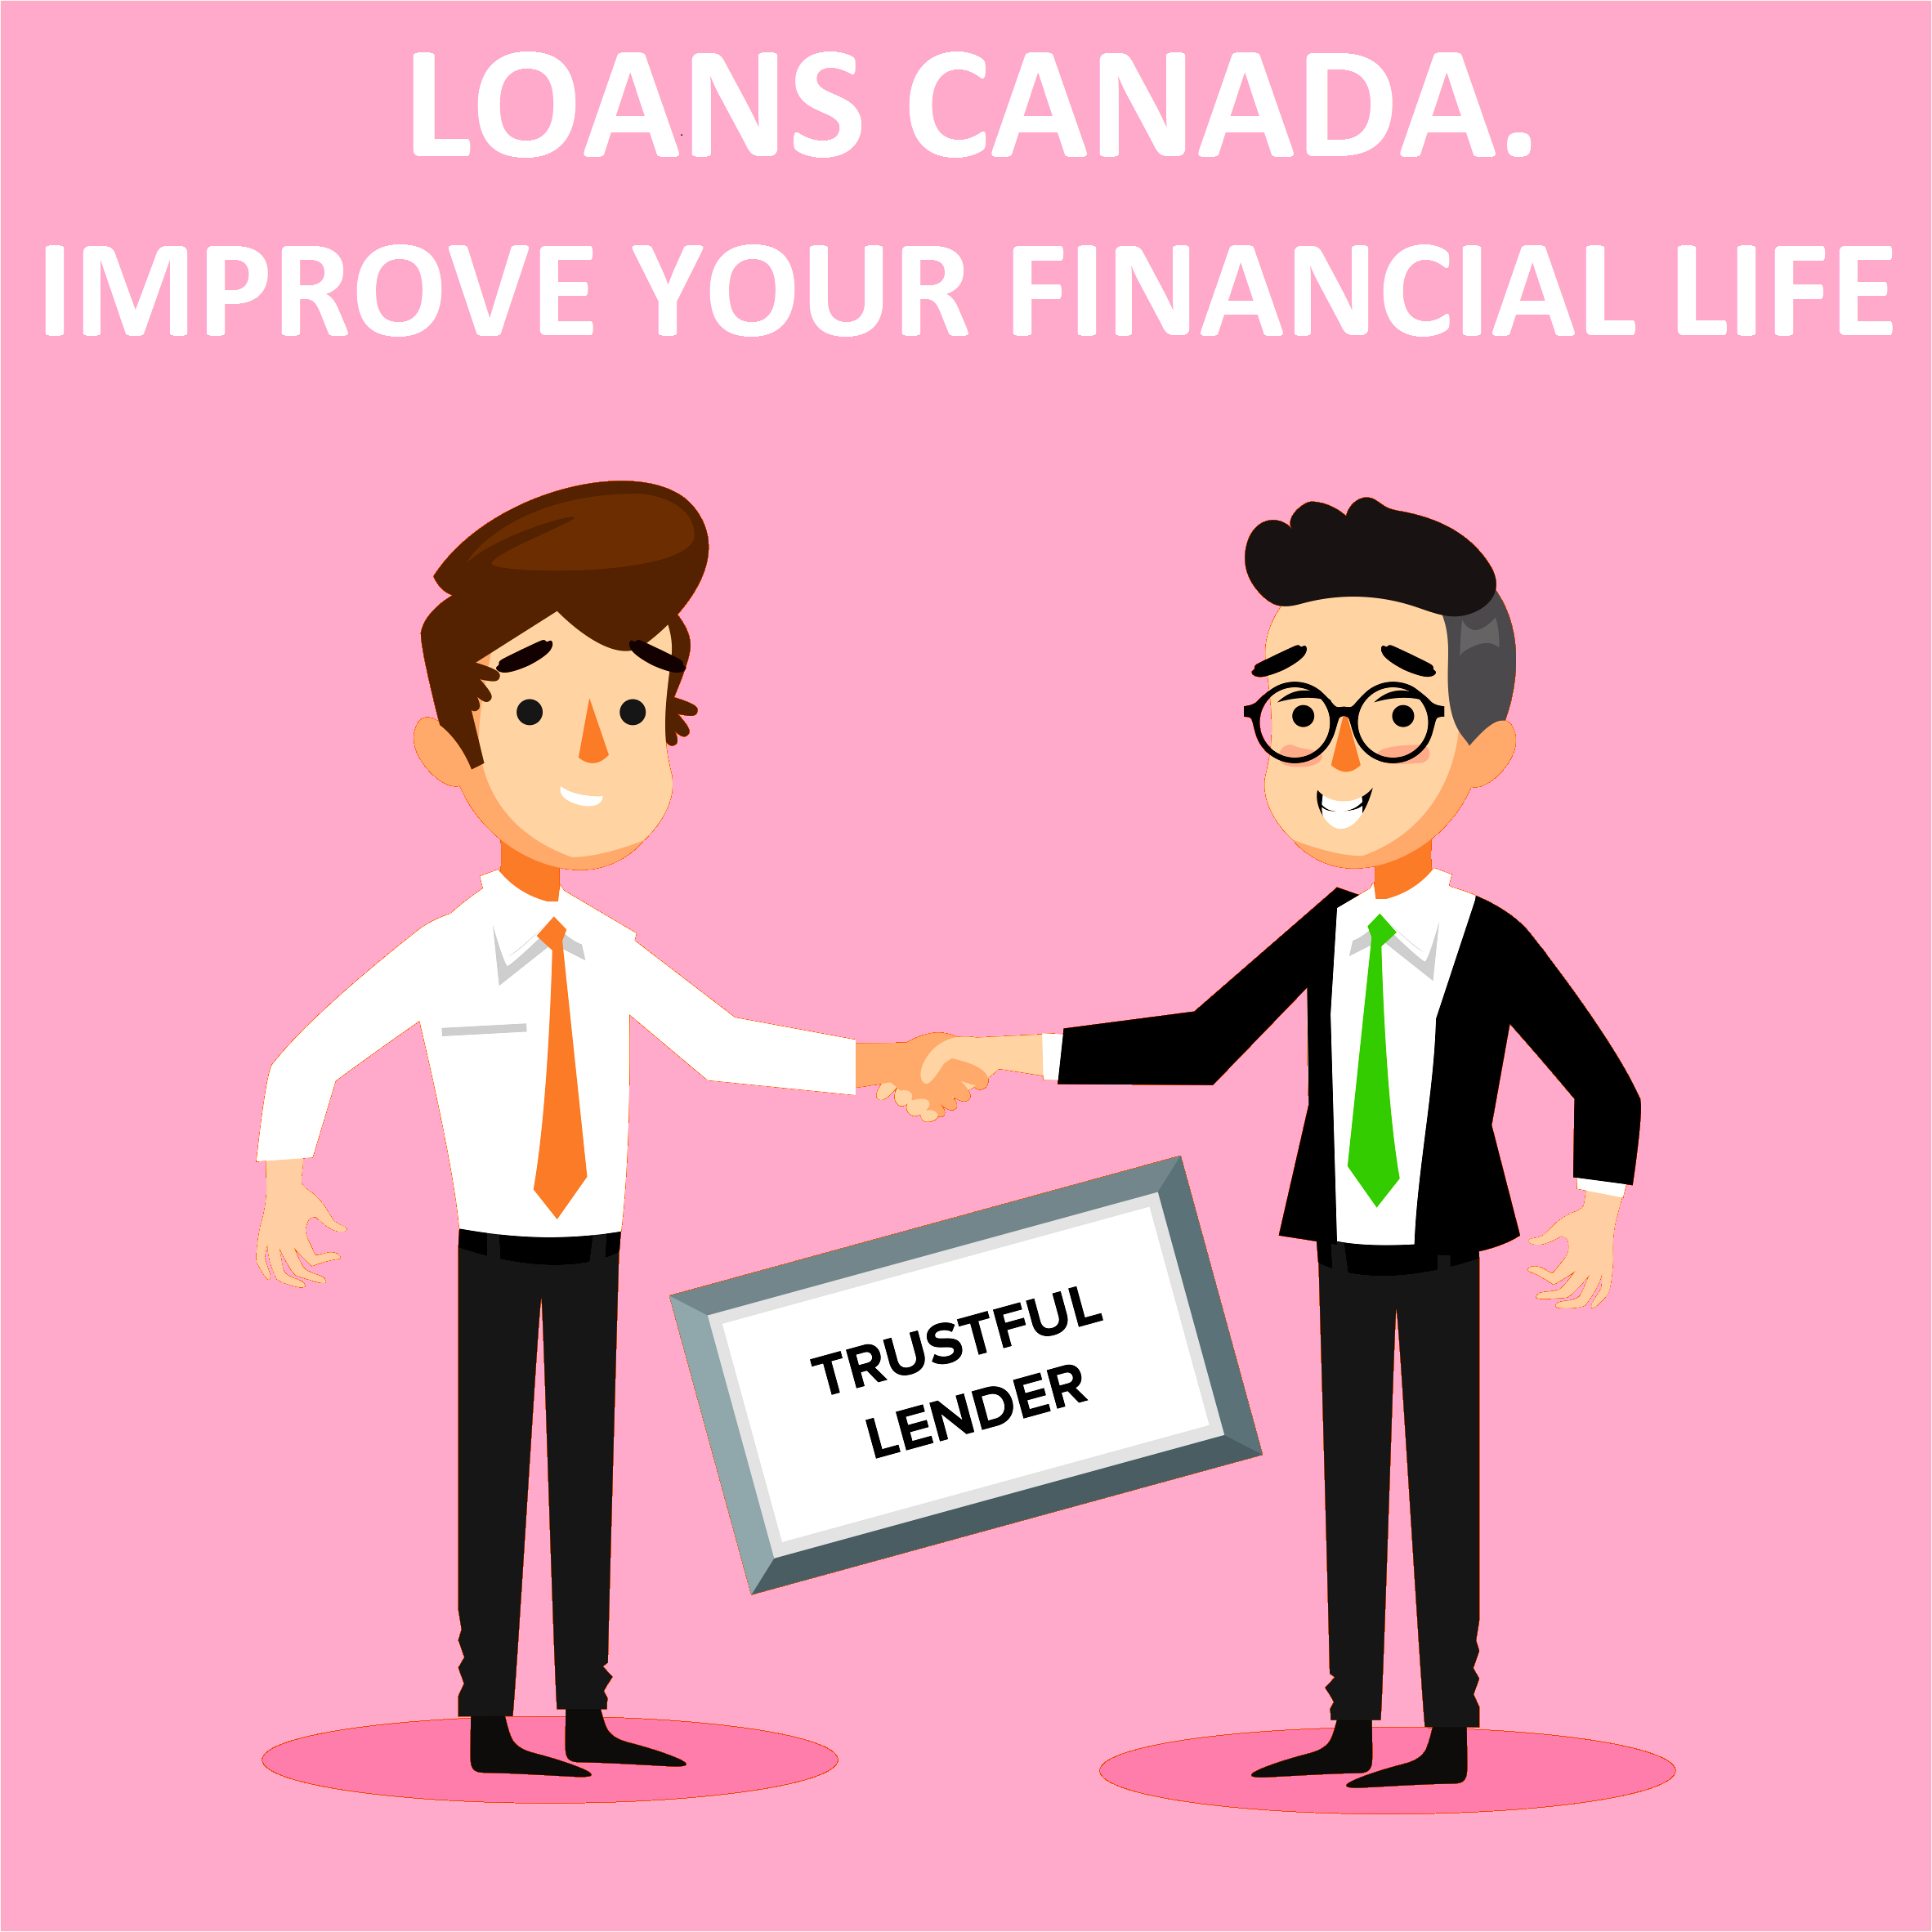 Loans Canada. Improve Your Financial Life